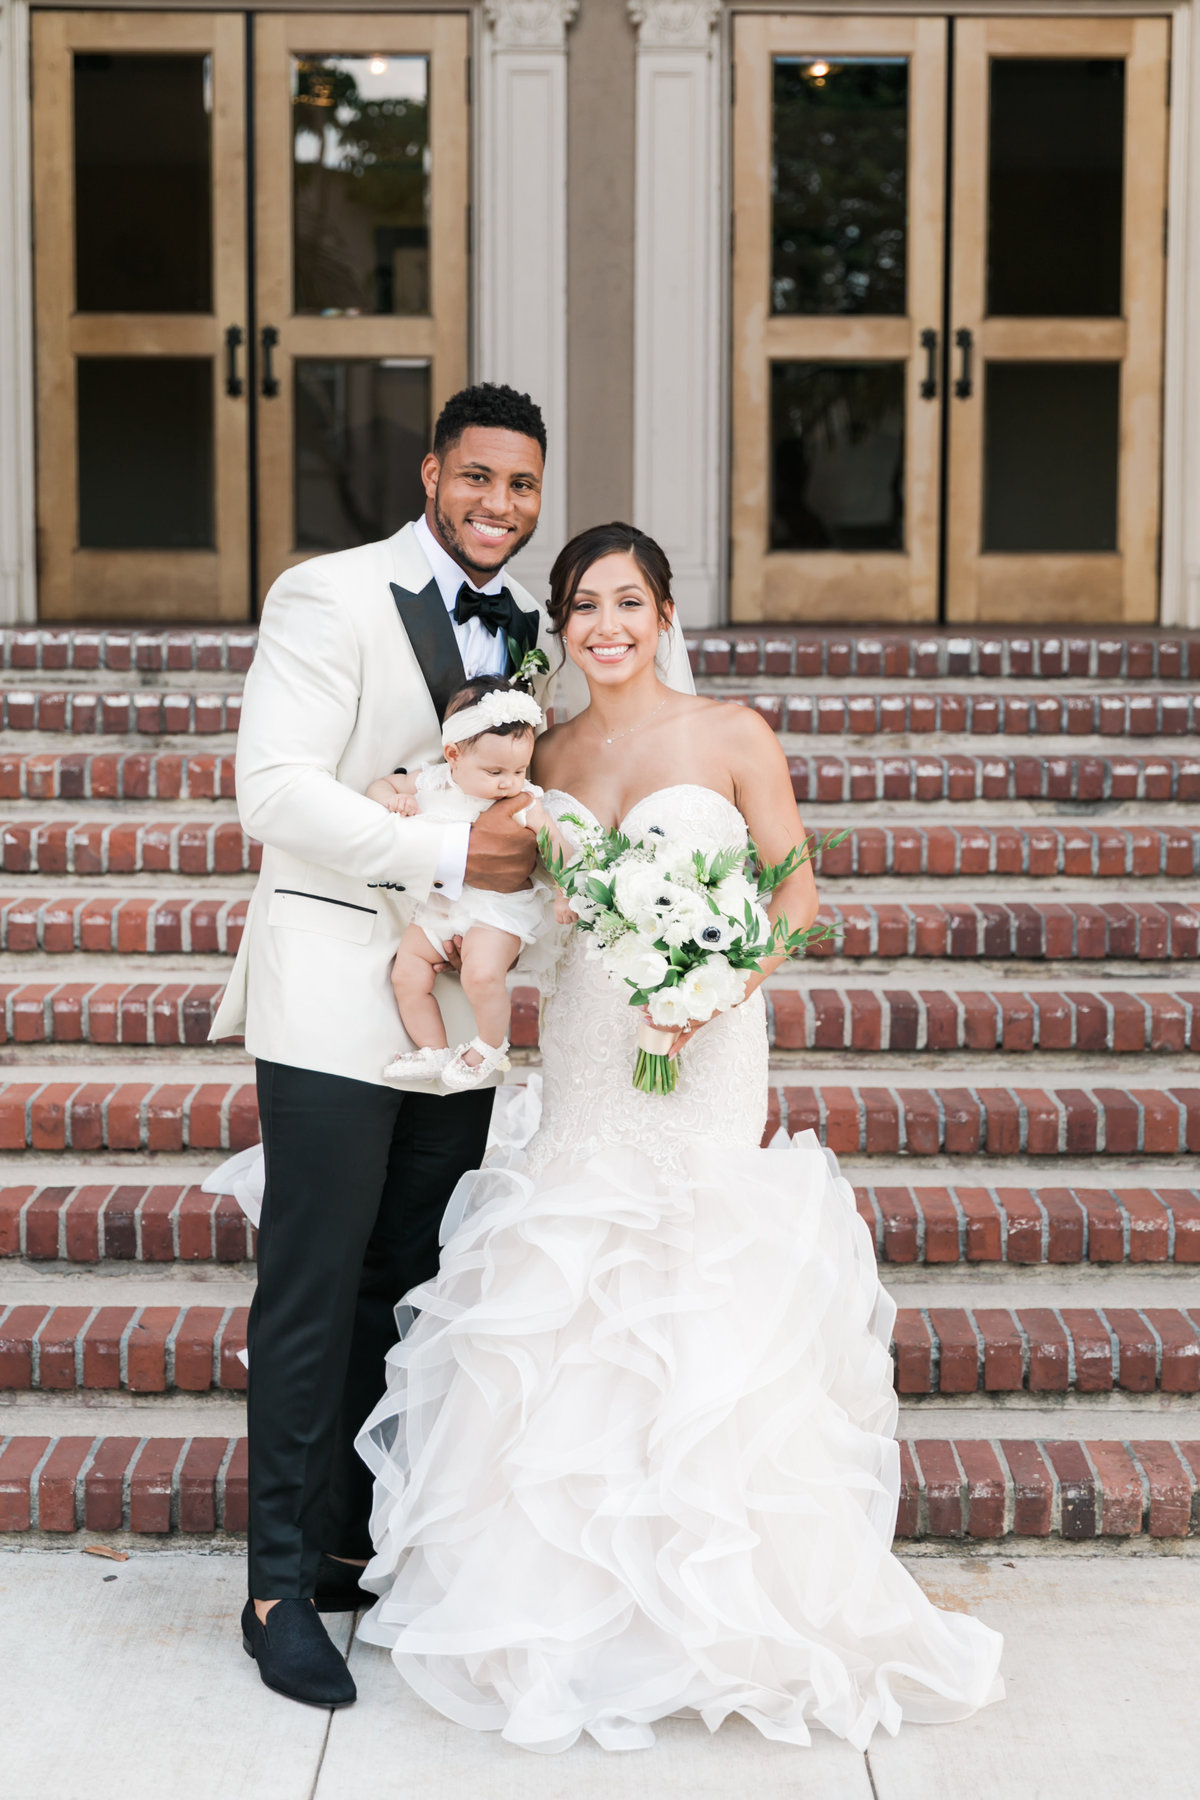 Ebell_Los_Angeles_Malcolm_Smith_NFL_Navy_Brass_Wedding_Valorie_Darling_Photography - 85 of 122